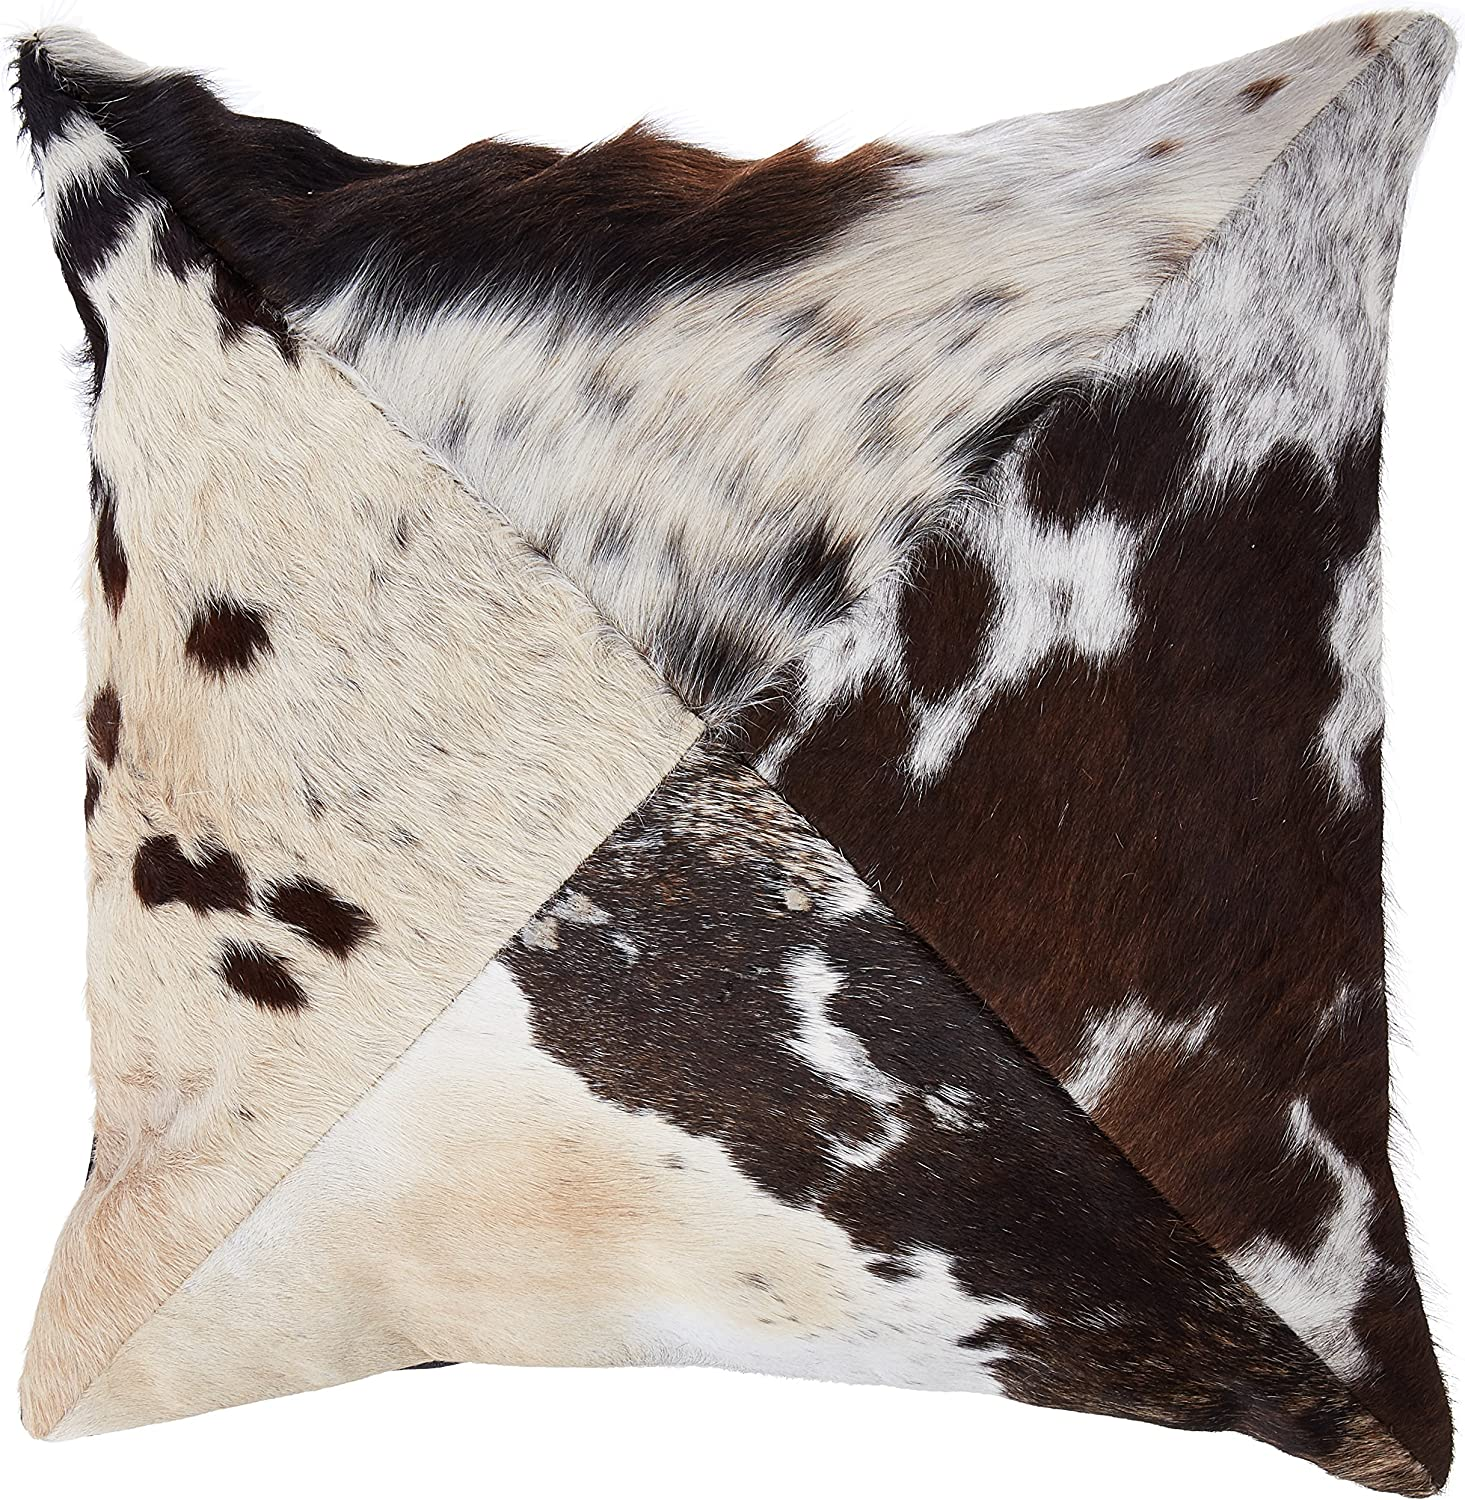 Cowhide Pillow Multi-color Cow Hide Cushion Decorative Throw Pillows (Single Side) By Ecowhides